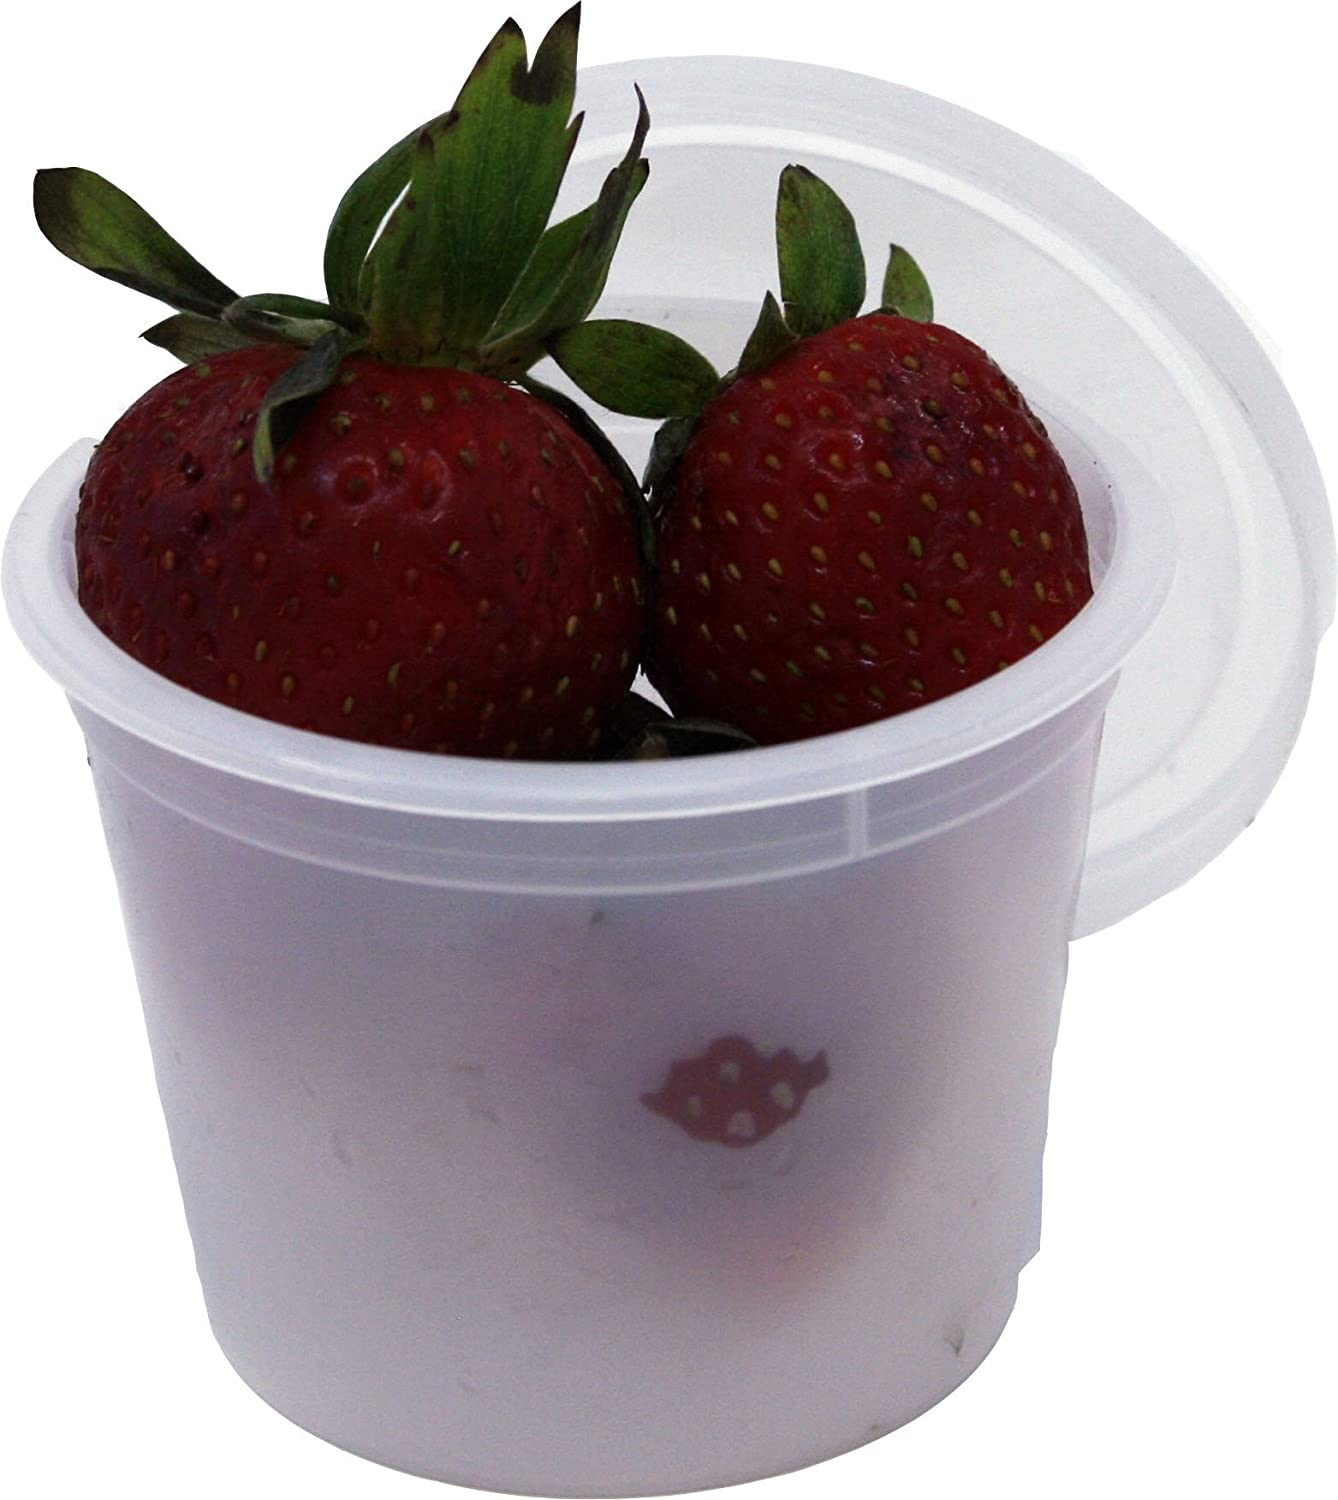 Vito's famous Deli Container with Lid, 4 Ounce (Pack 50) | Leak resistant | Freezer safe